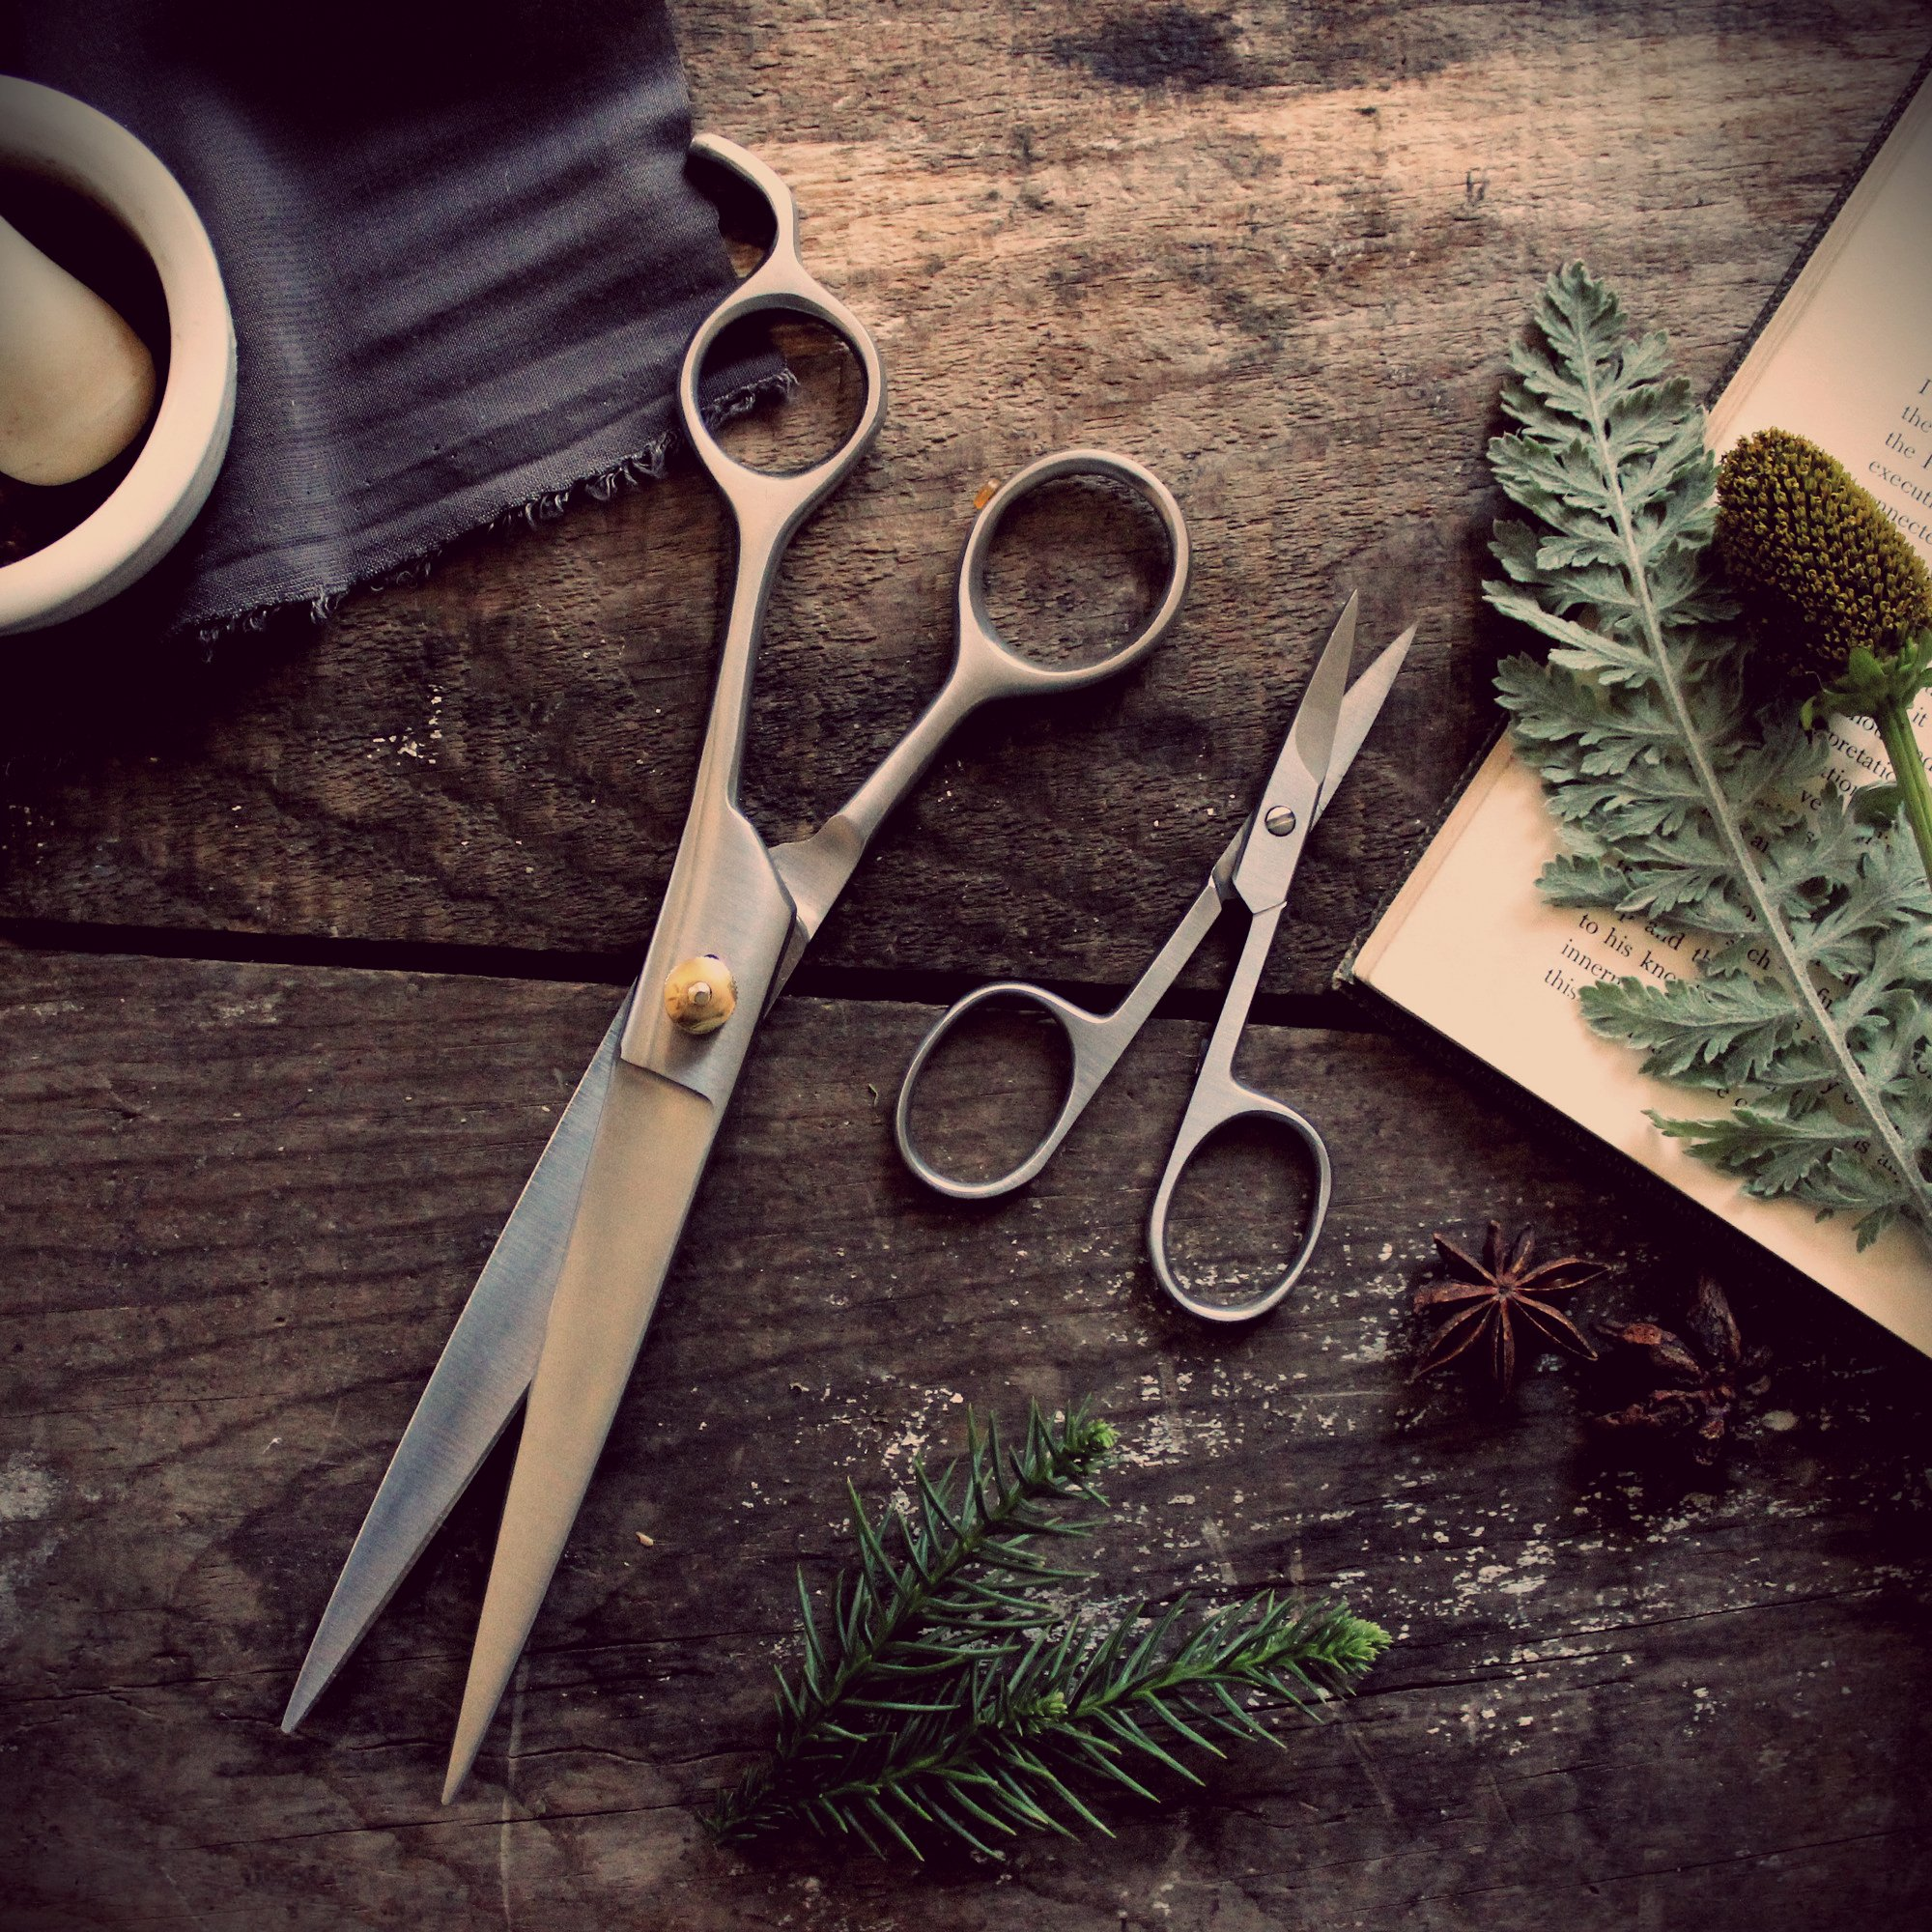 Hair Scissors Wallpaper | www.pixshark.com - Images ...